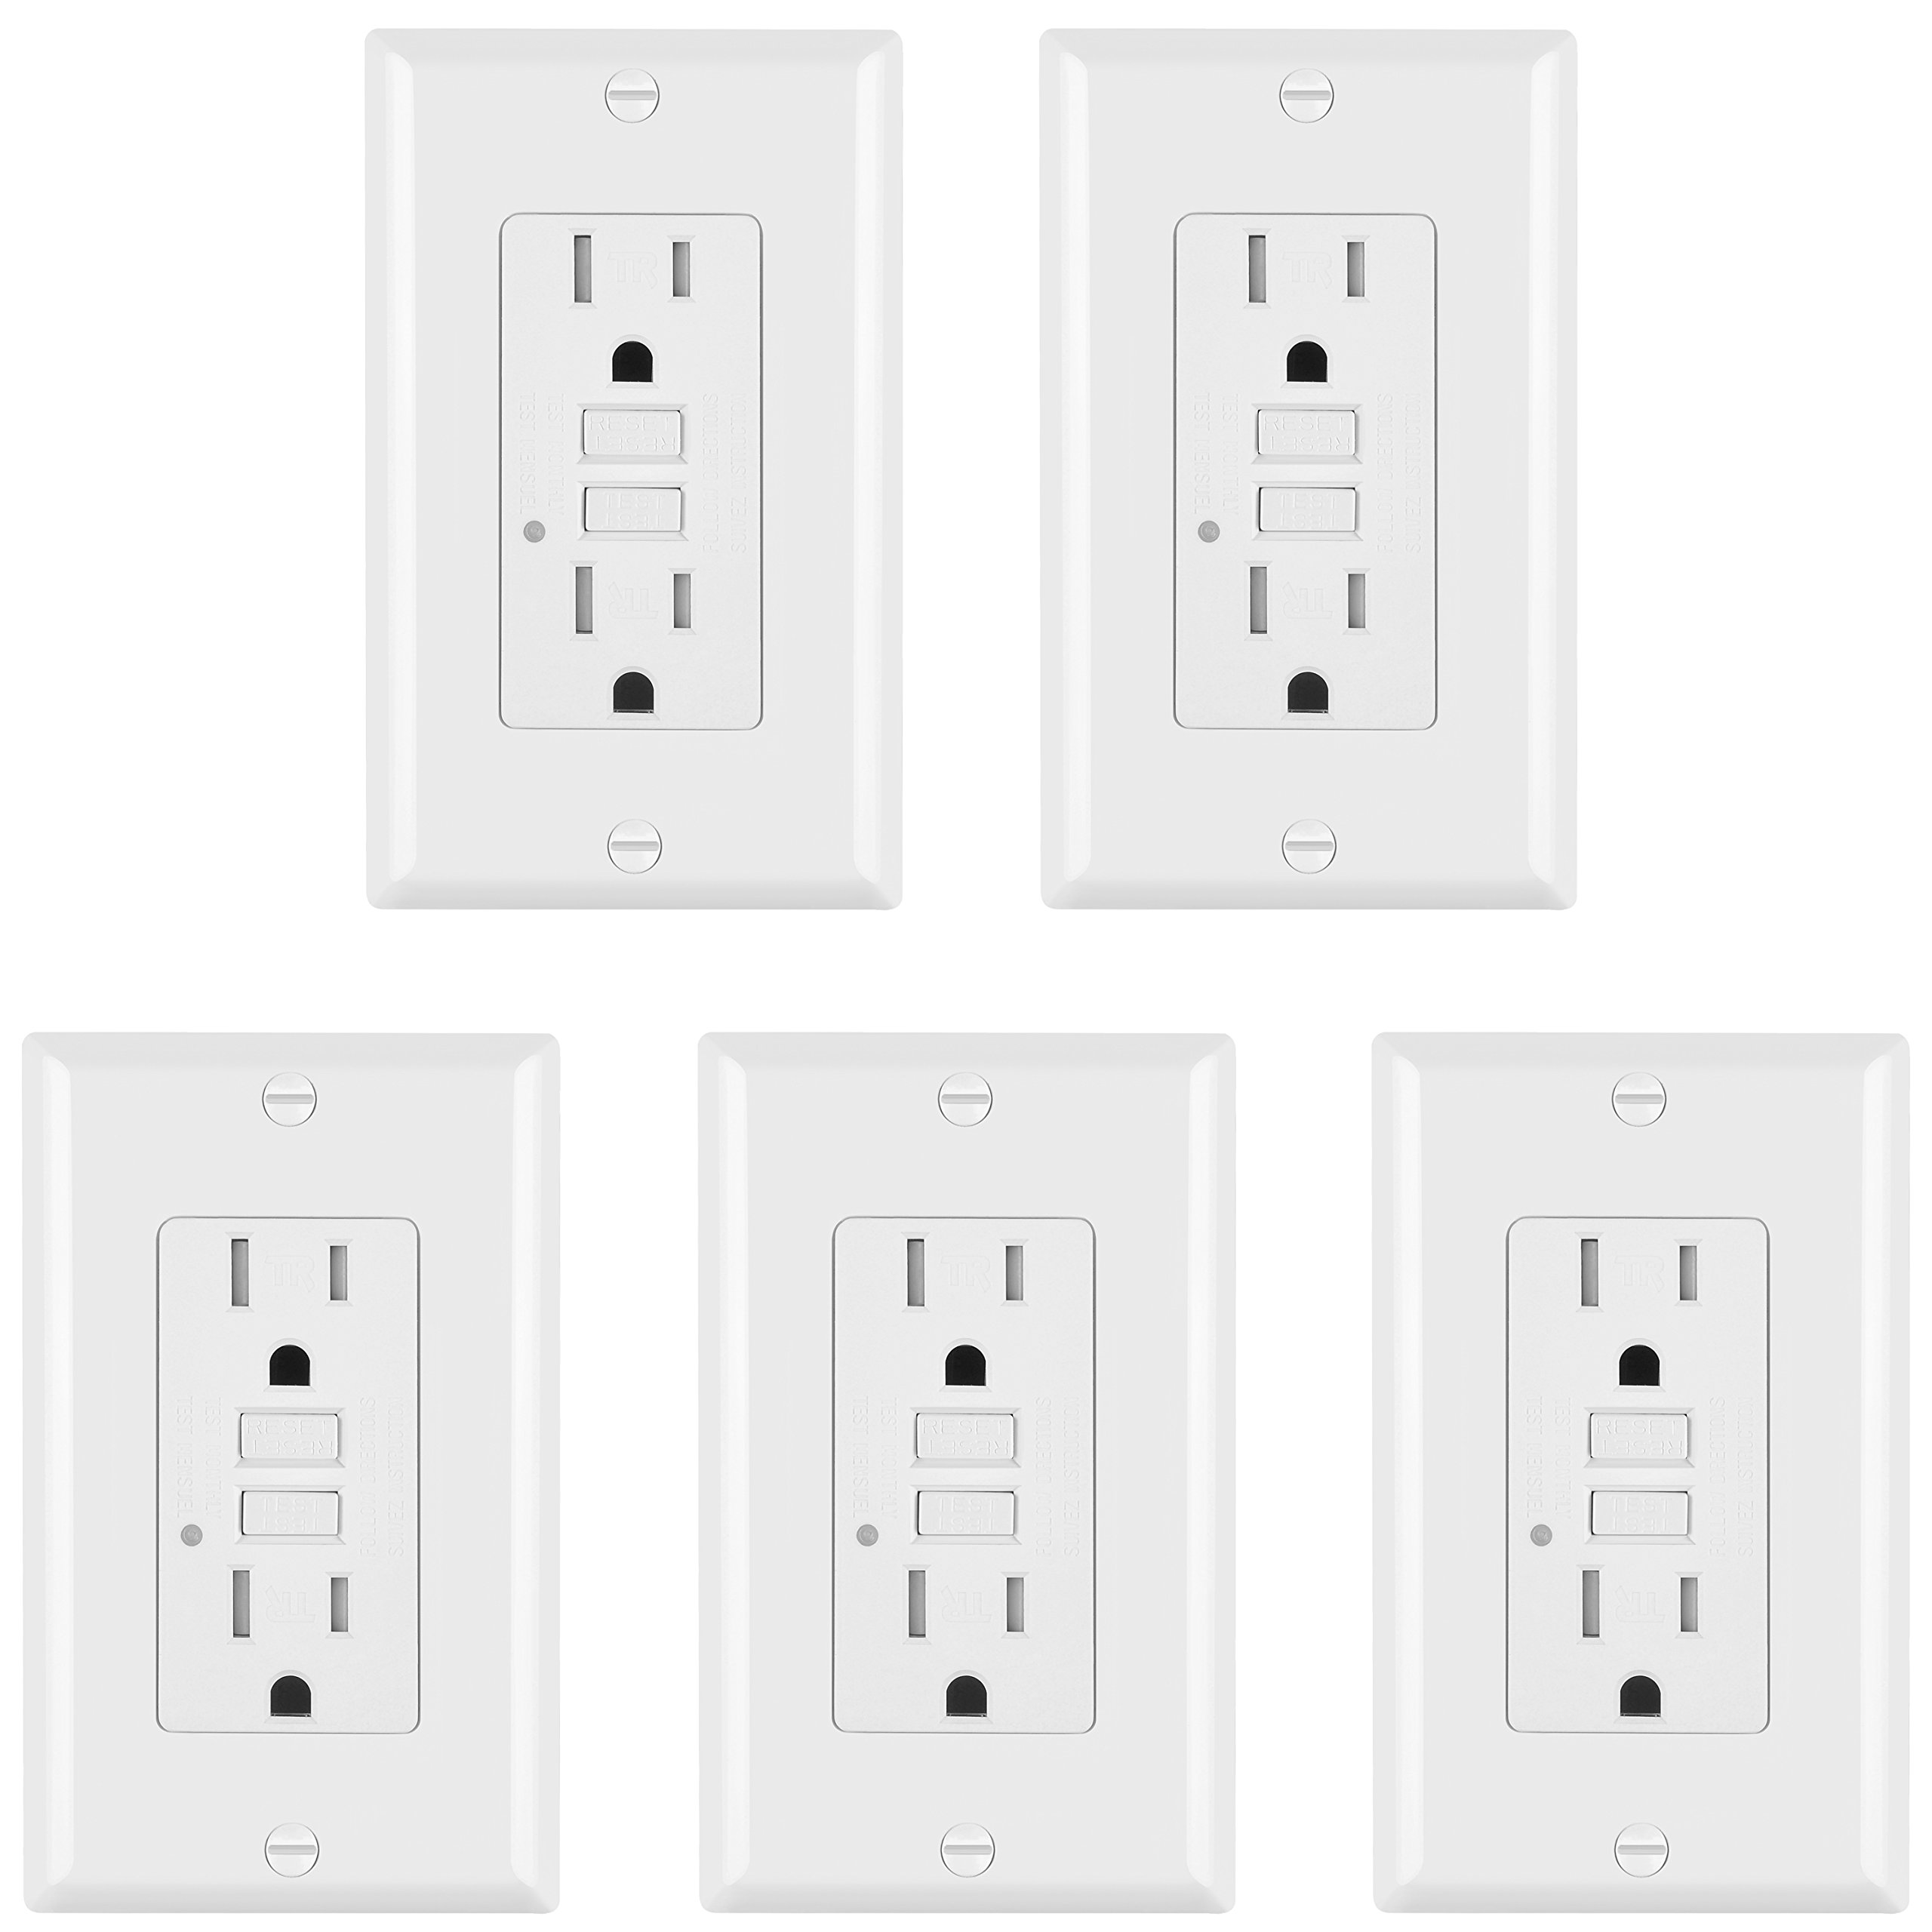 5 Pack - ELECTECK 15A/125V Tamper Resistant GFCI Outlets, Decor Receptacle with LED Indicator, Decorative Wall Plates and Screws Included, Residential and Commercial Grade, ETL Certified, White by ELECTECK (Image #1)